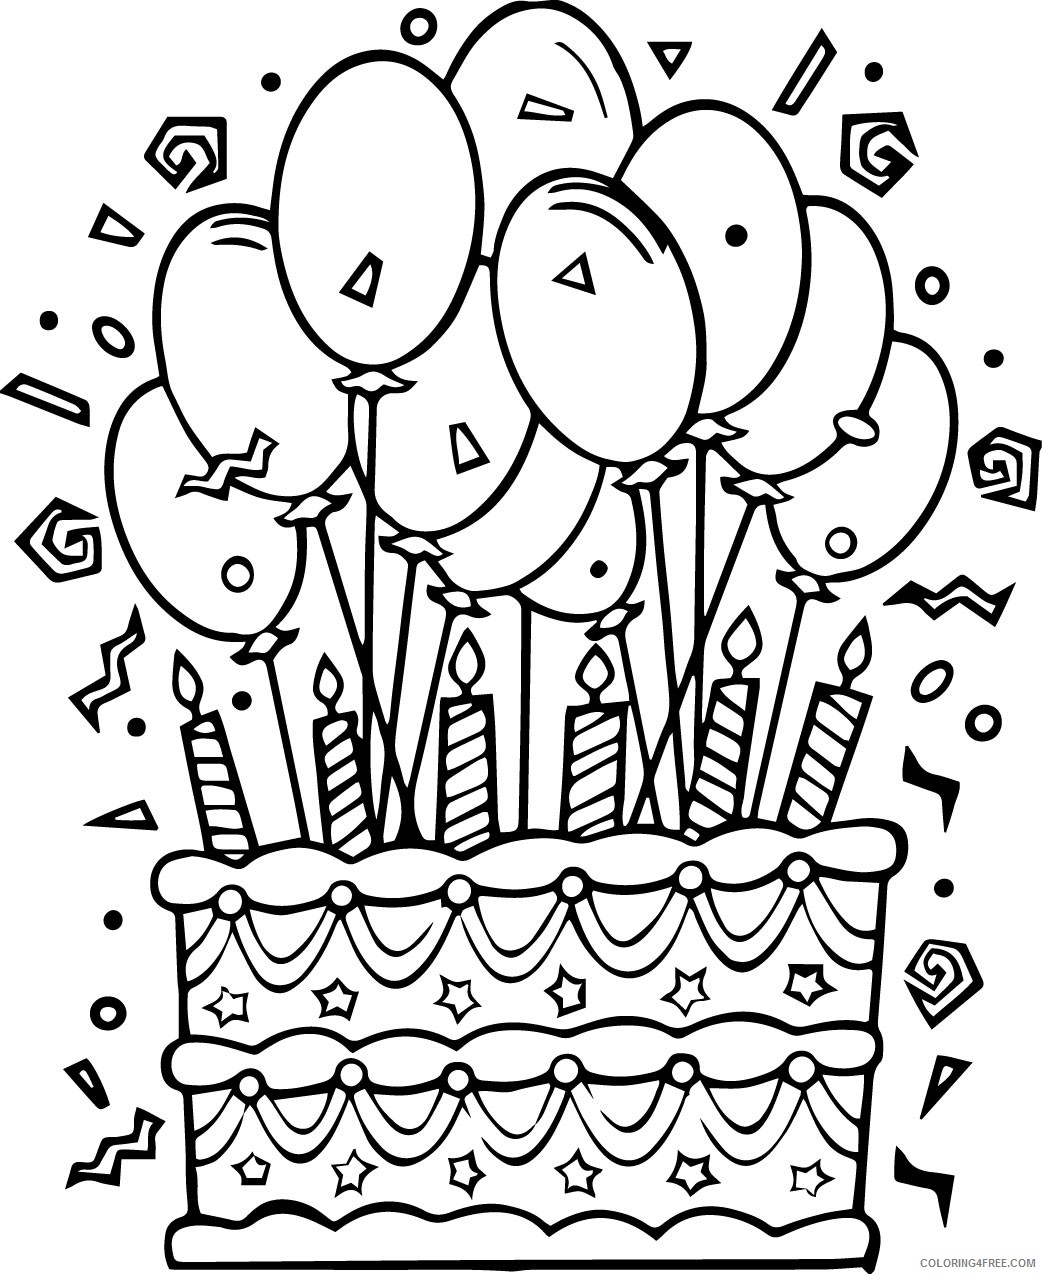 Birthday Cake Coloring Page 13   Free Birthday Cake Coloring Page   1274x1042